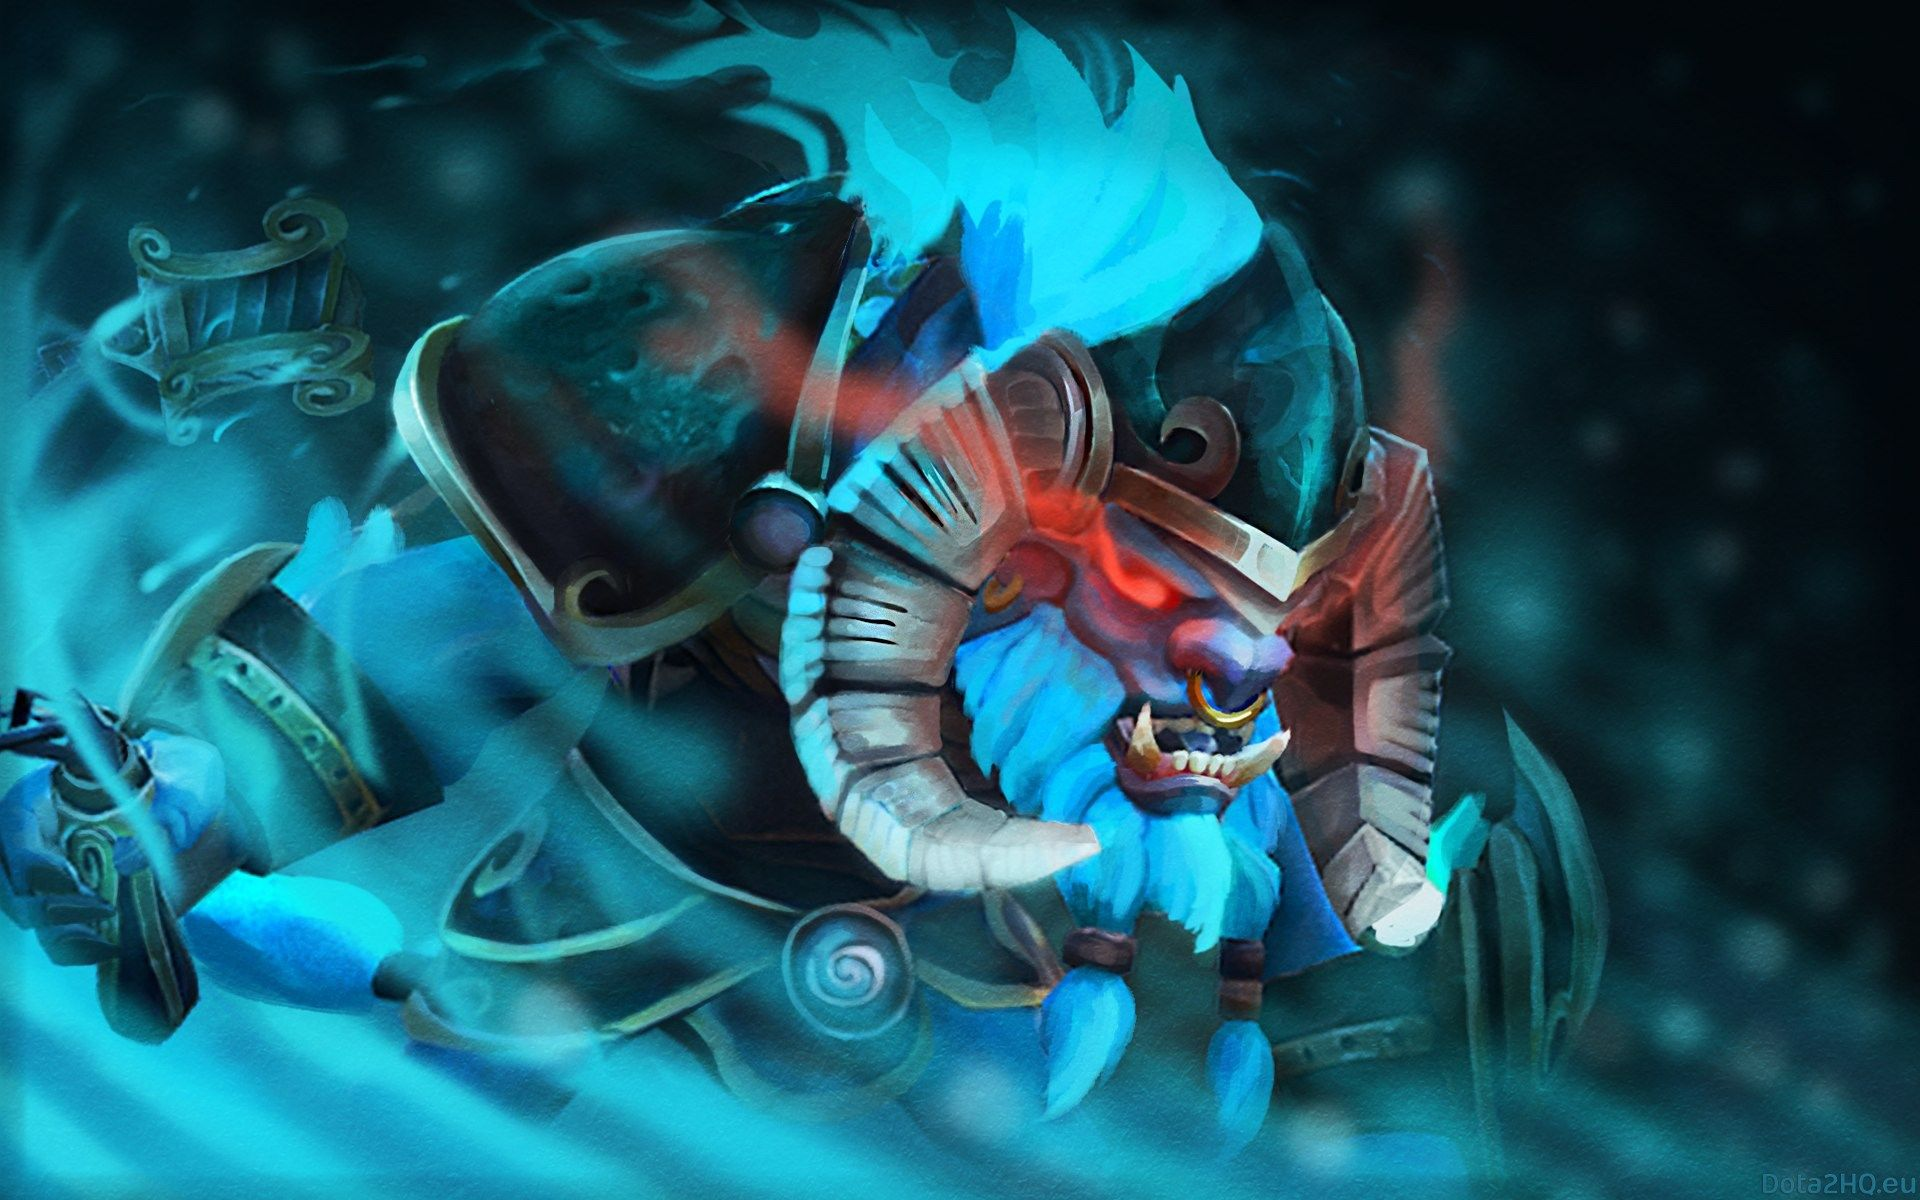 1920x1200 spirit breaker #dota 2 image (With images)